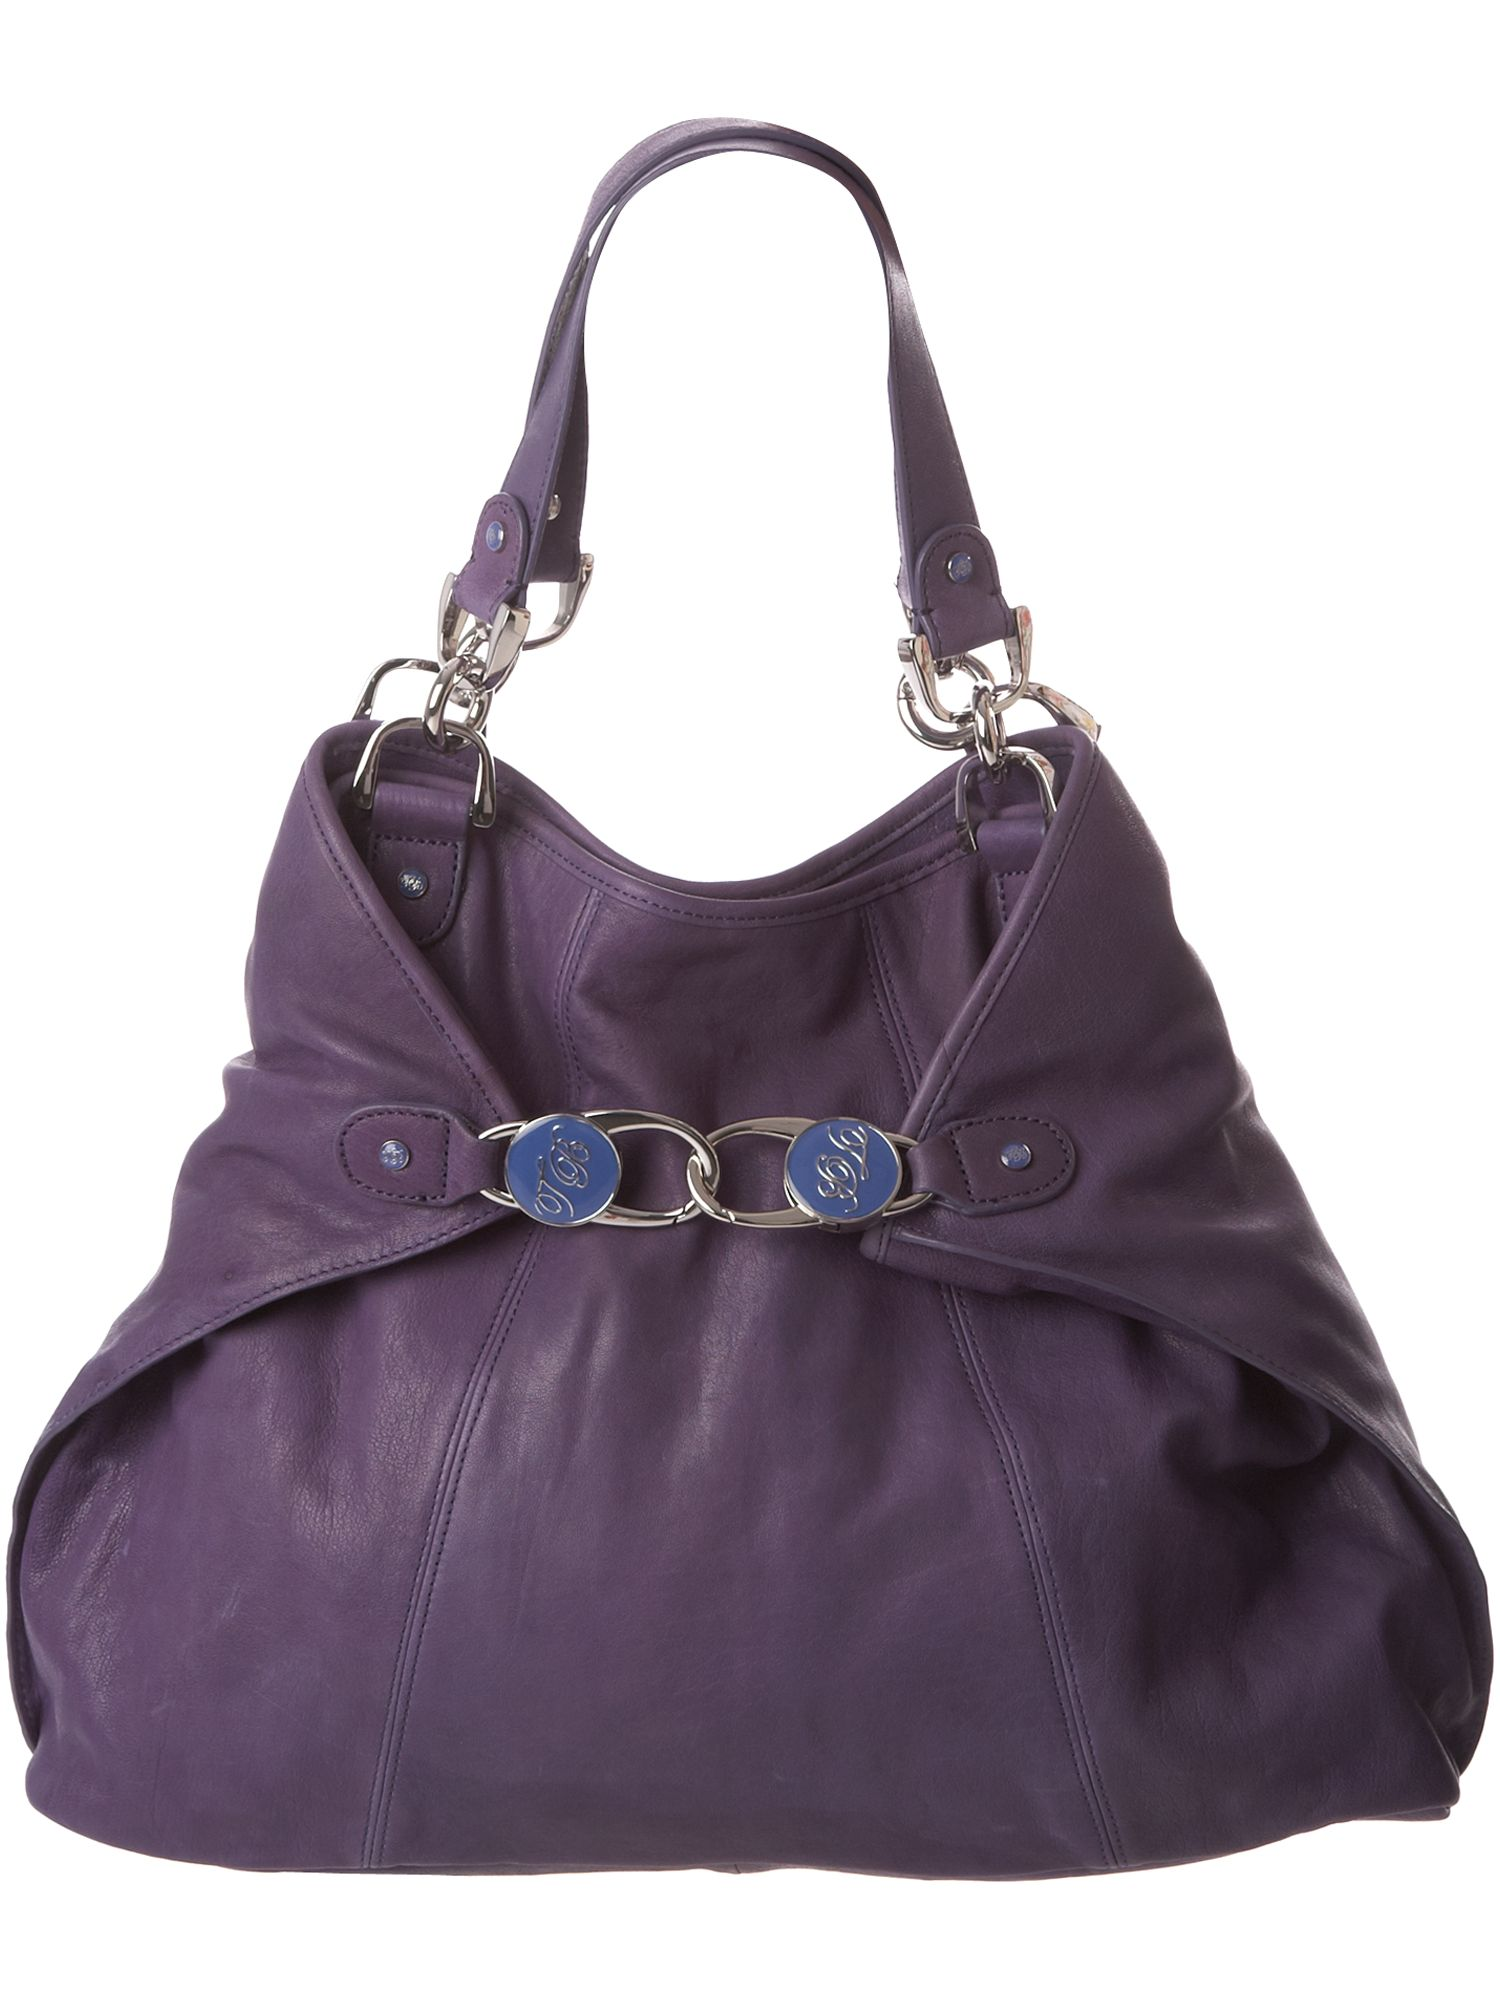 Ted Baker Rocket large leather tote bag product image